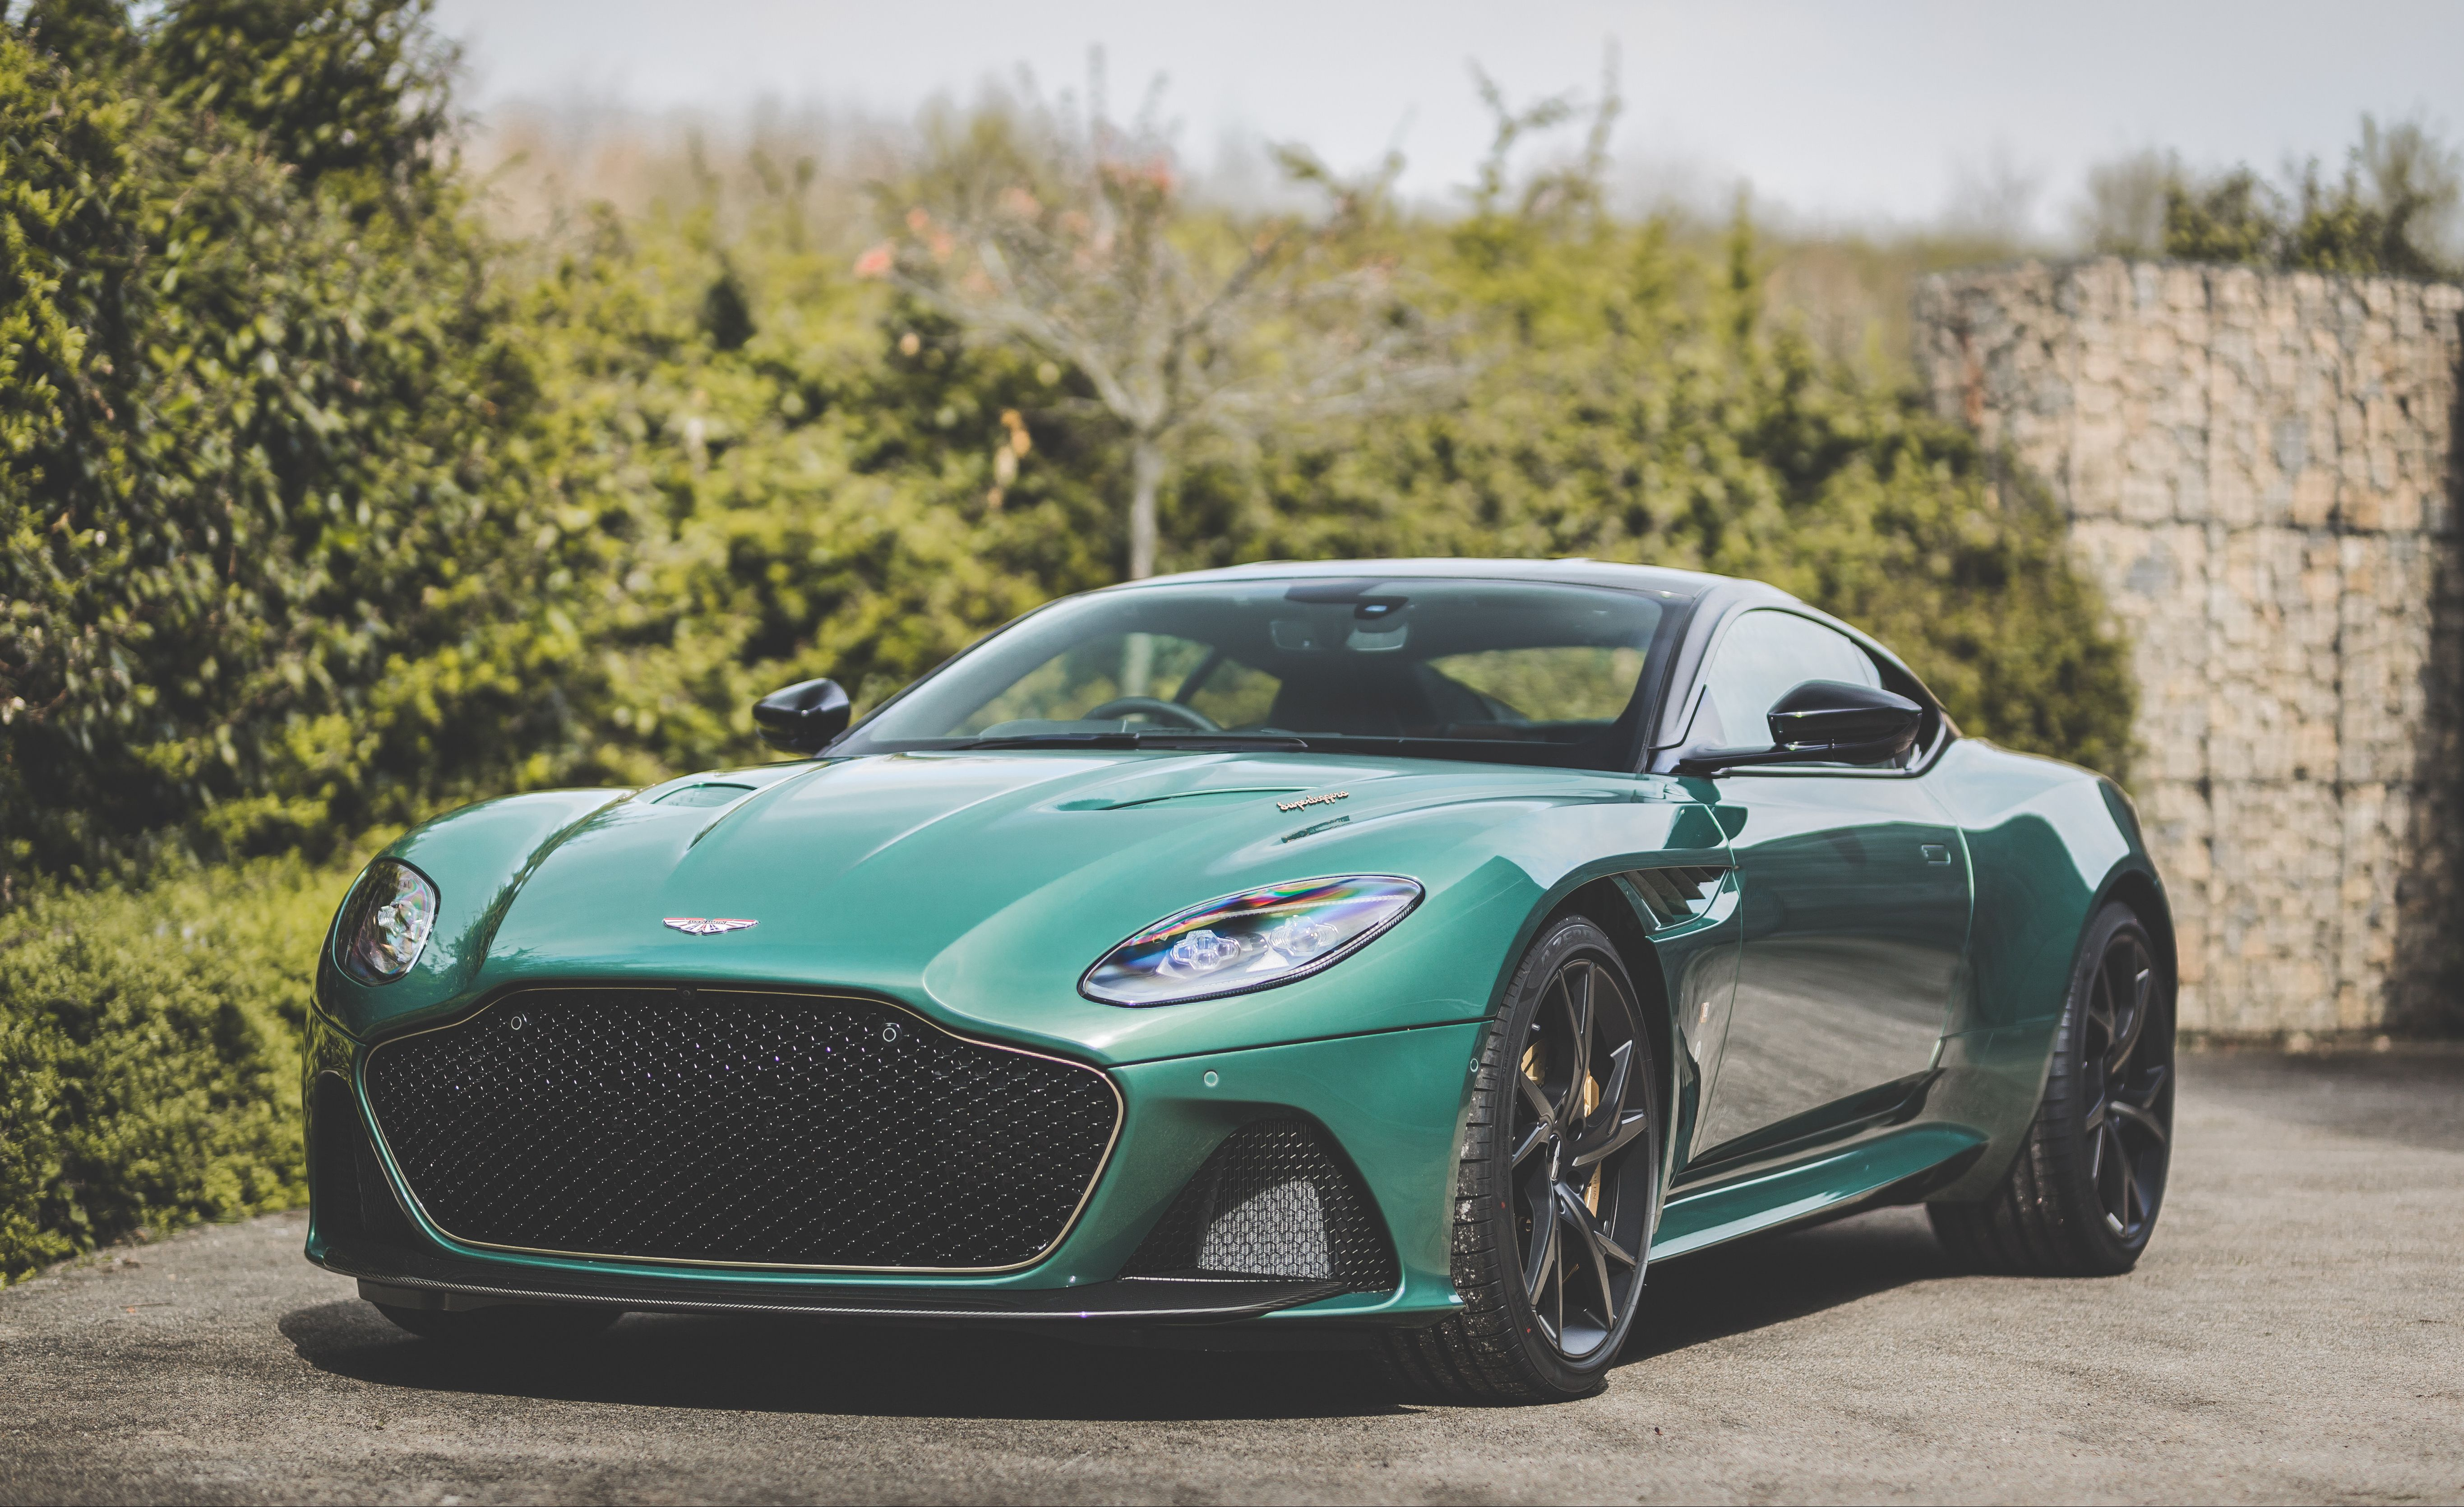 View Photos of the Aston Martin DBS 59 Special Edition